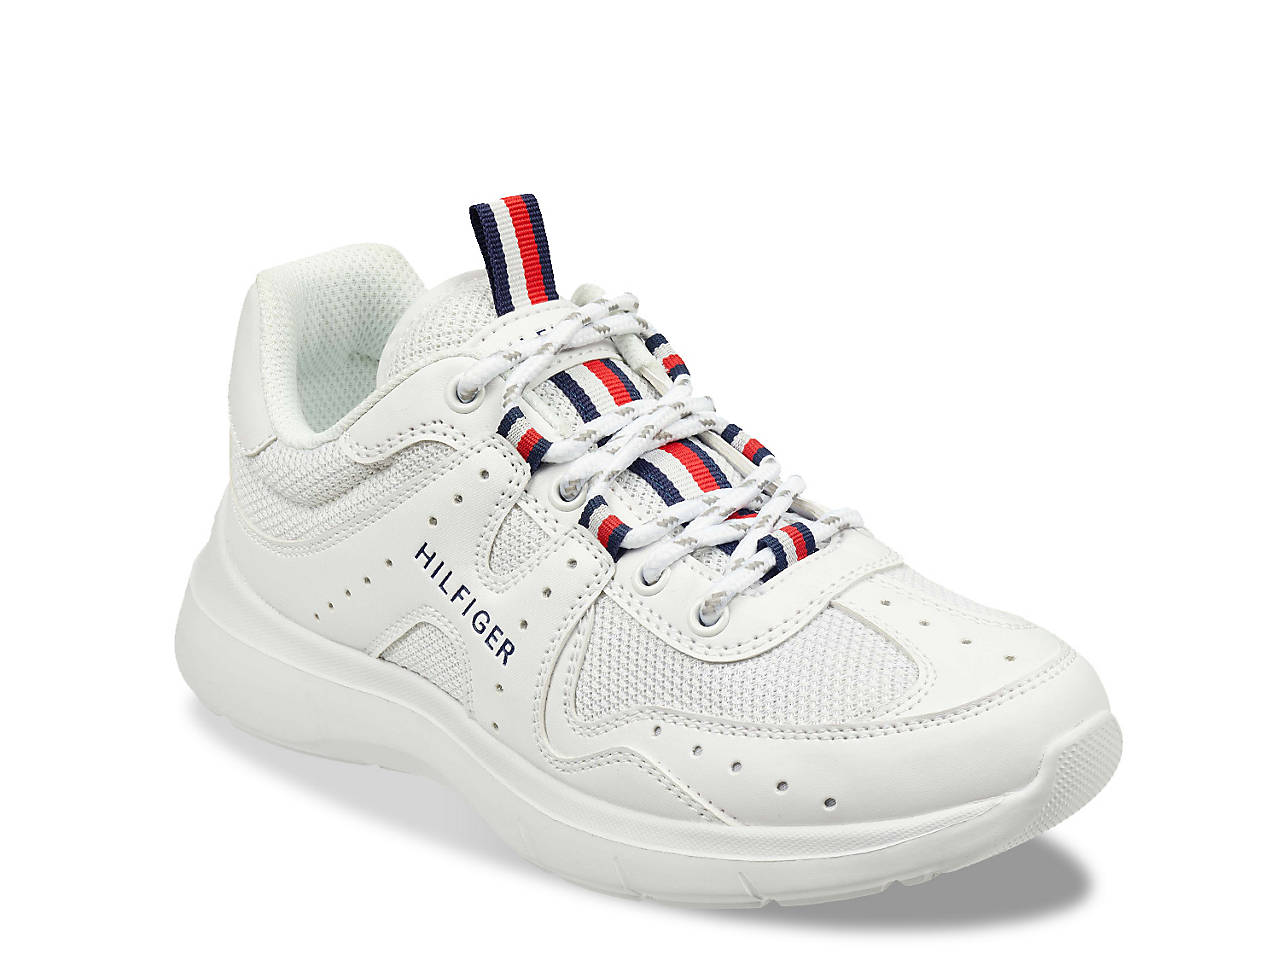 0c9a0bdac413 Tommy Hilfiger Corio Sneaker Women s Shoes